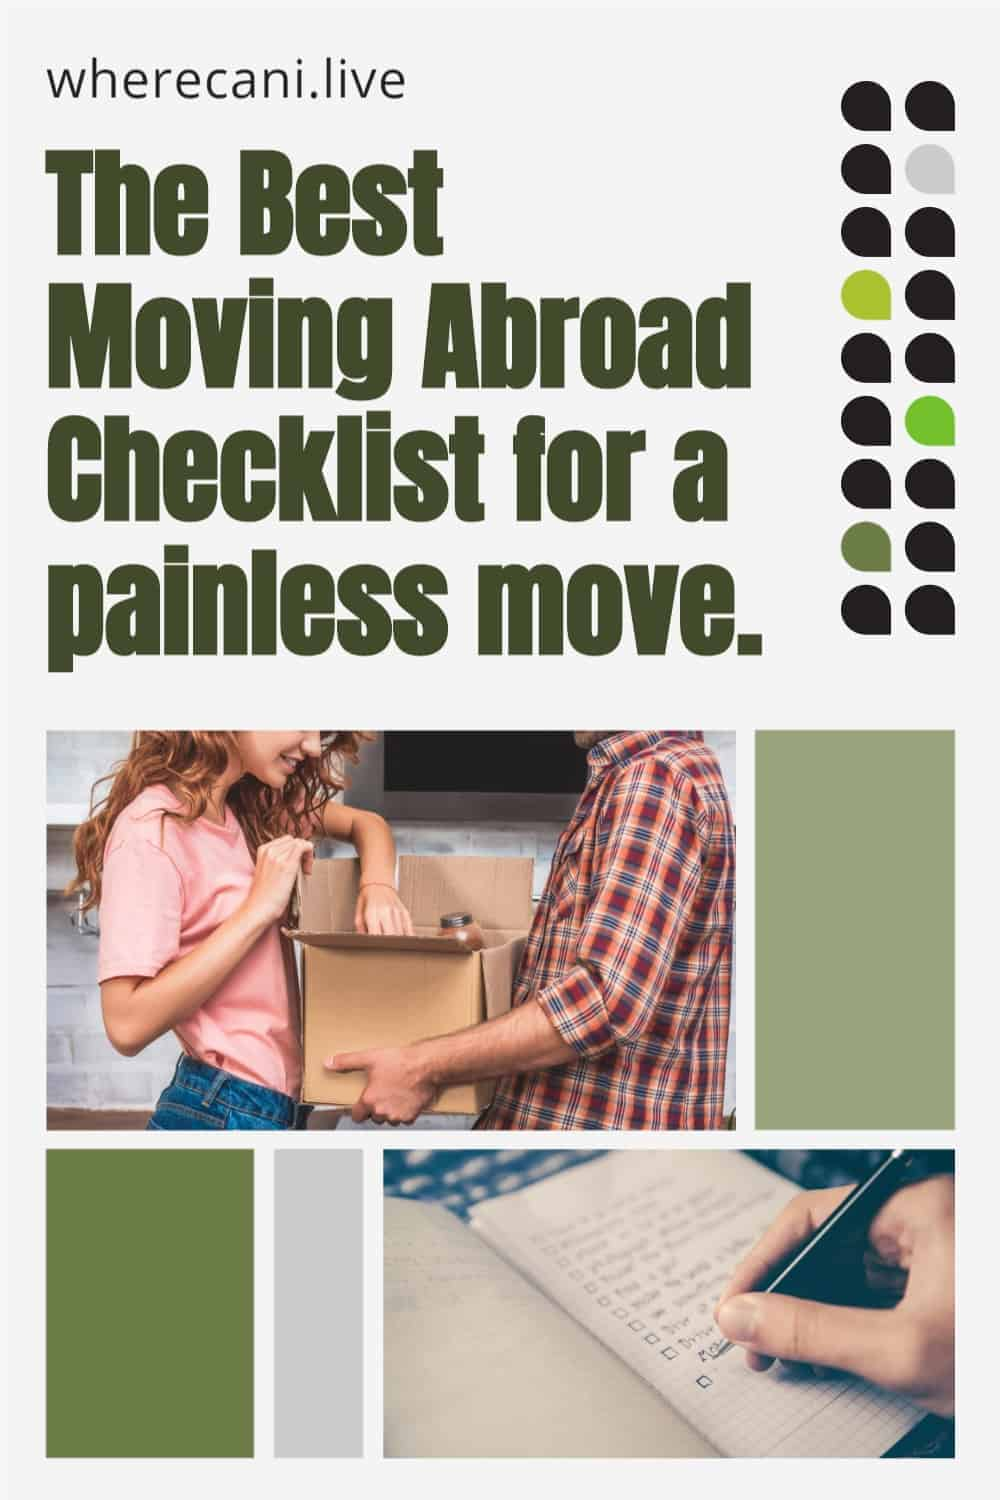 Are you moving abroad? Hundreds of things to think about?  Use our ultimate checklist to make the move pain-free #checklist #moveabroad #overseas #relocation via @wherecanilive